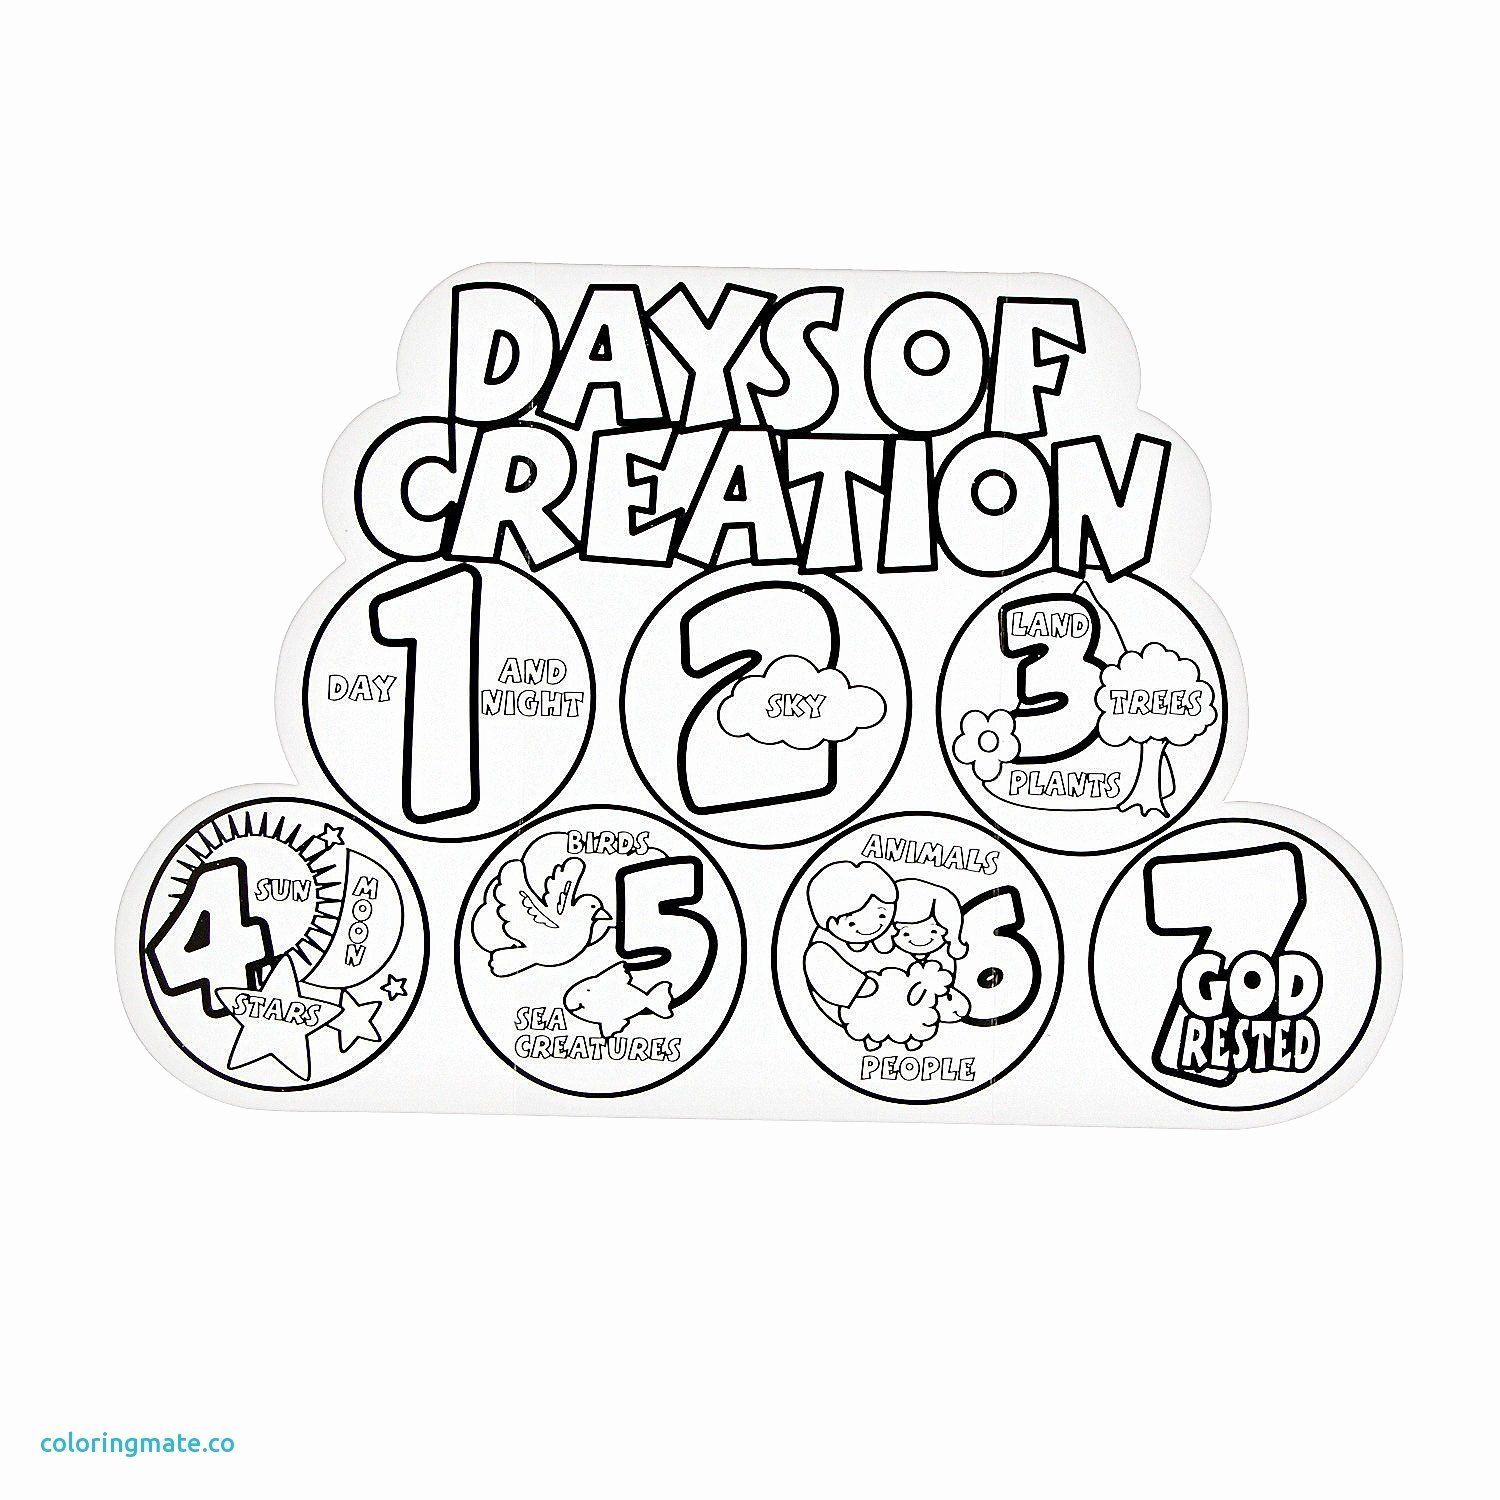 Science Halloween Coloring Pages Awesome 7 Days Creation Coloring Pages Free Creation Coloring Pages Sunday School Coloring Pages Days Of Creation